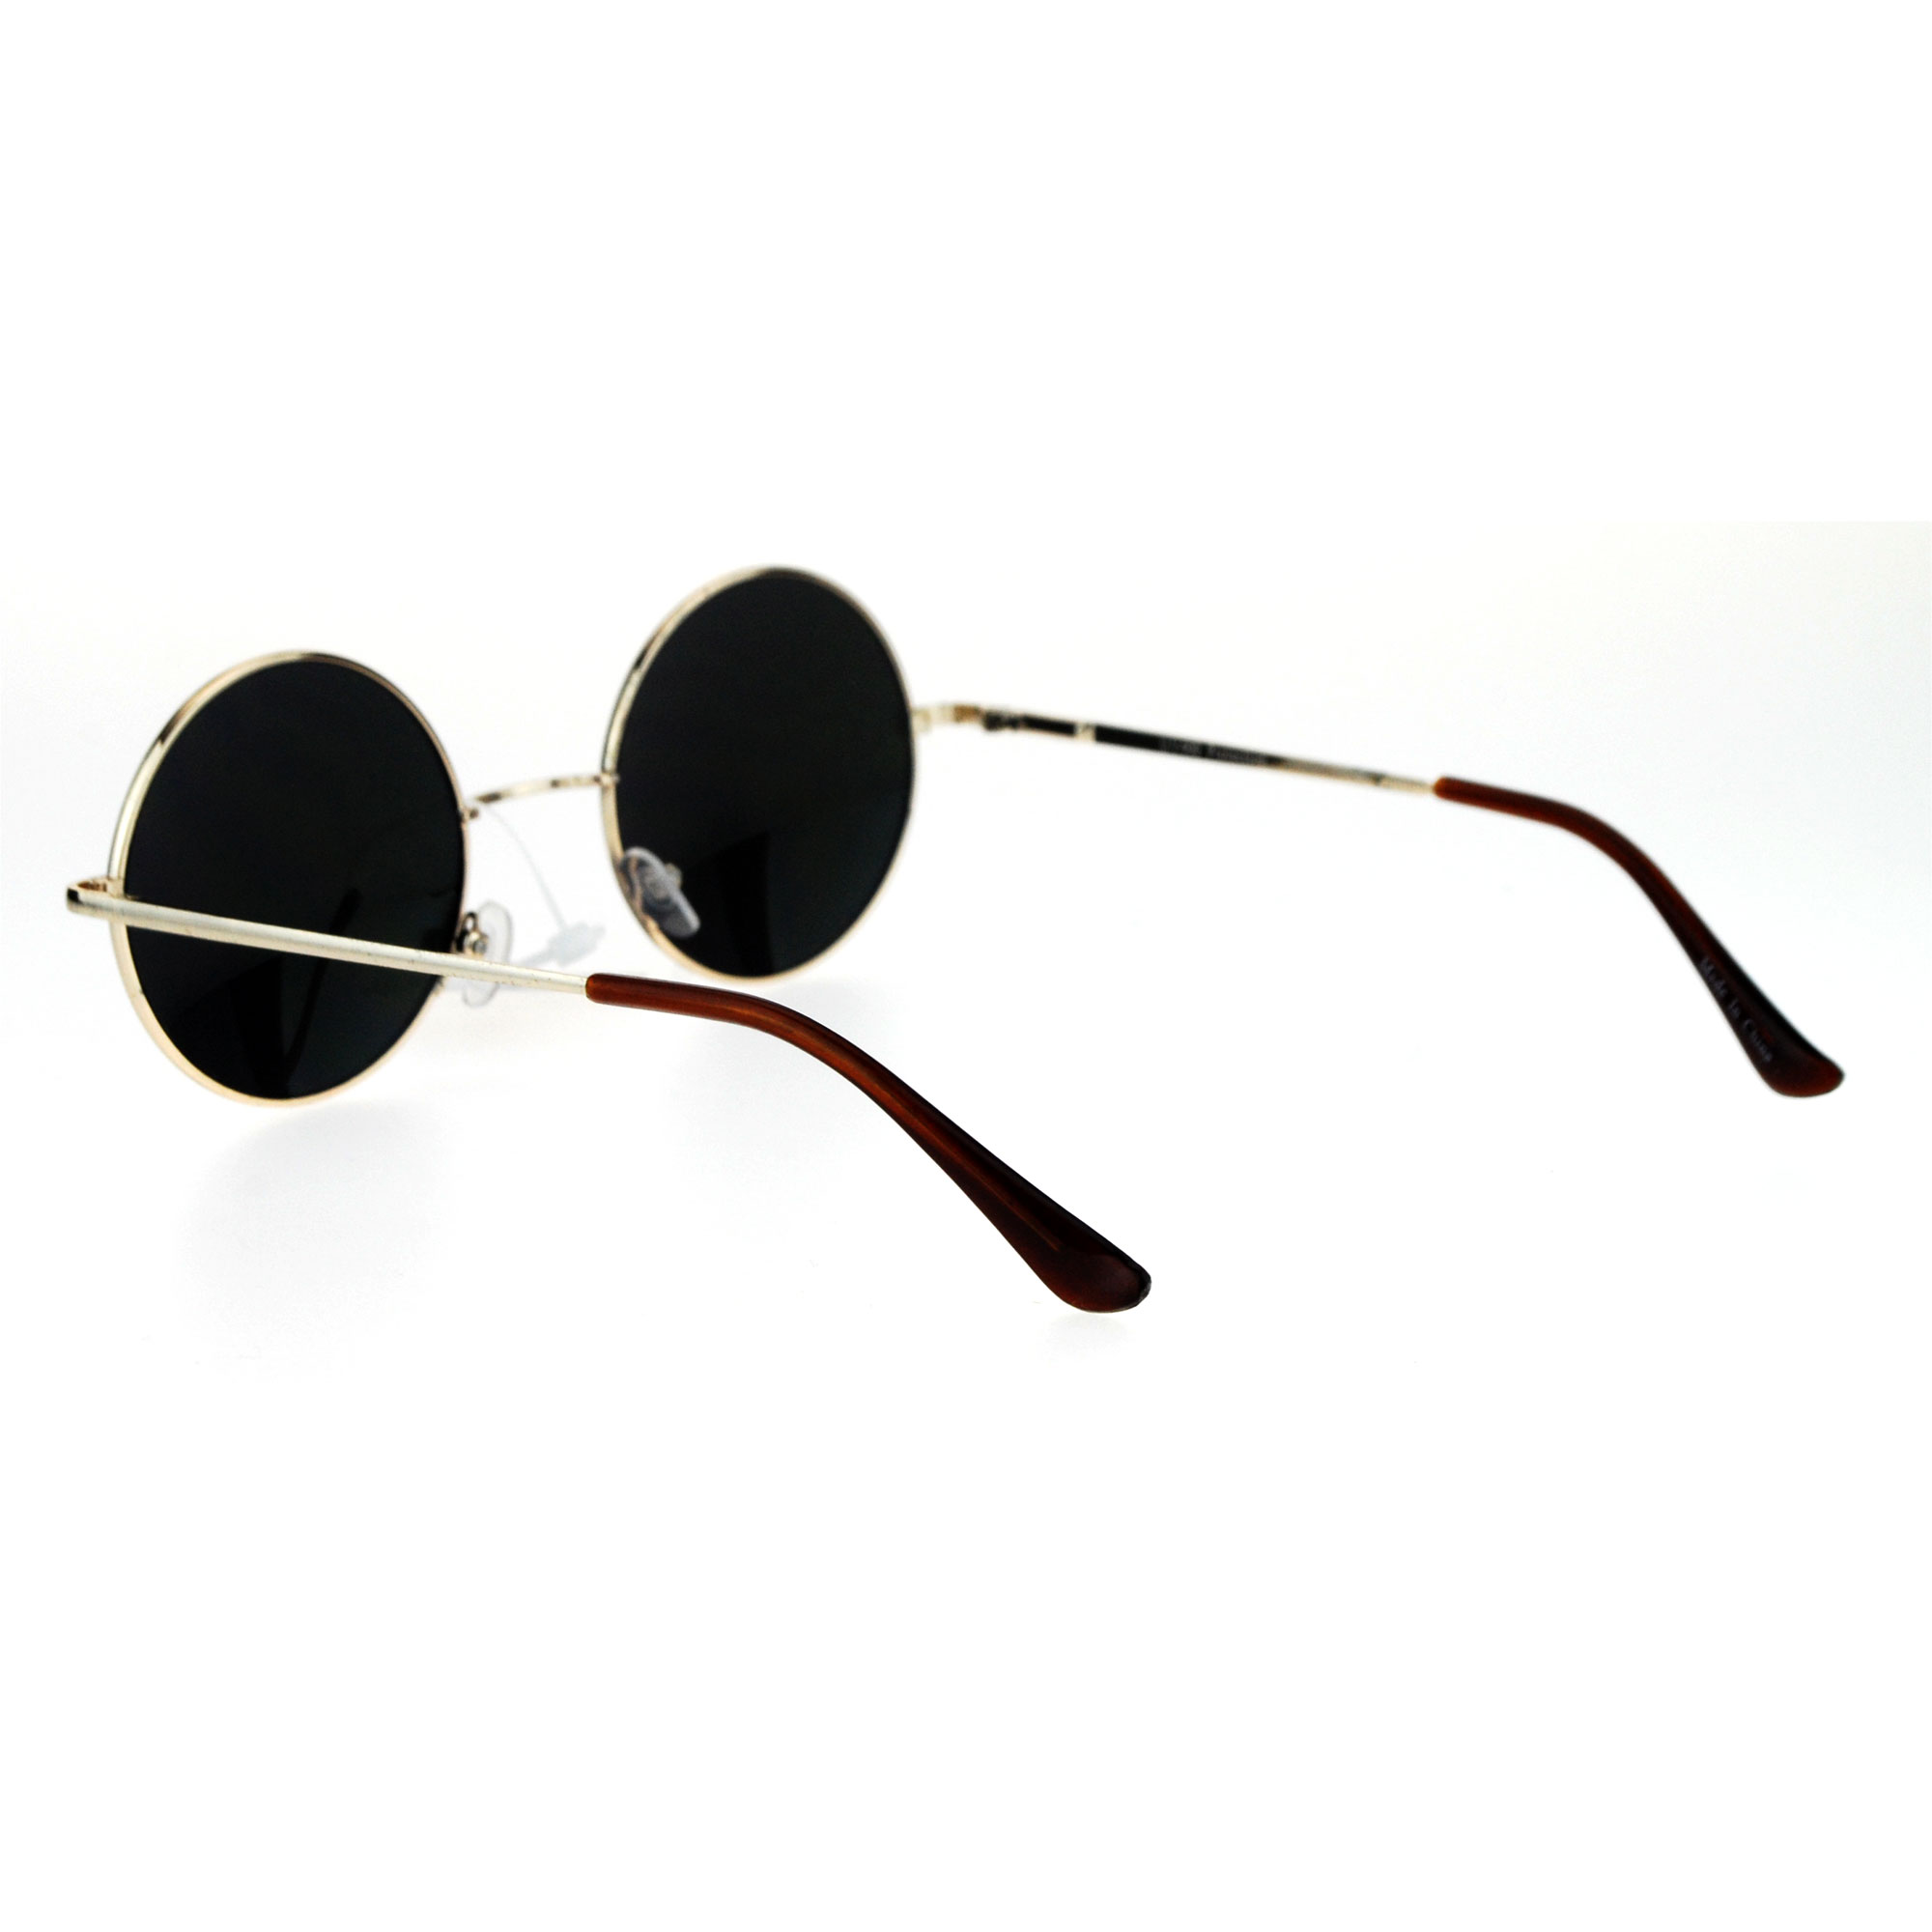 10d29f56214 SA106 - Reflective Color Mirrored Hippie Groove Round Circle Lens Retro  Sunglasses Gold Orange - Walmart.com